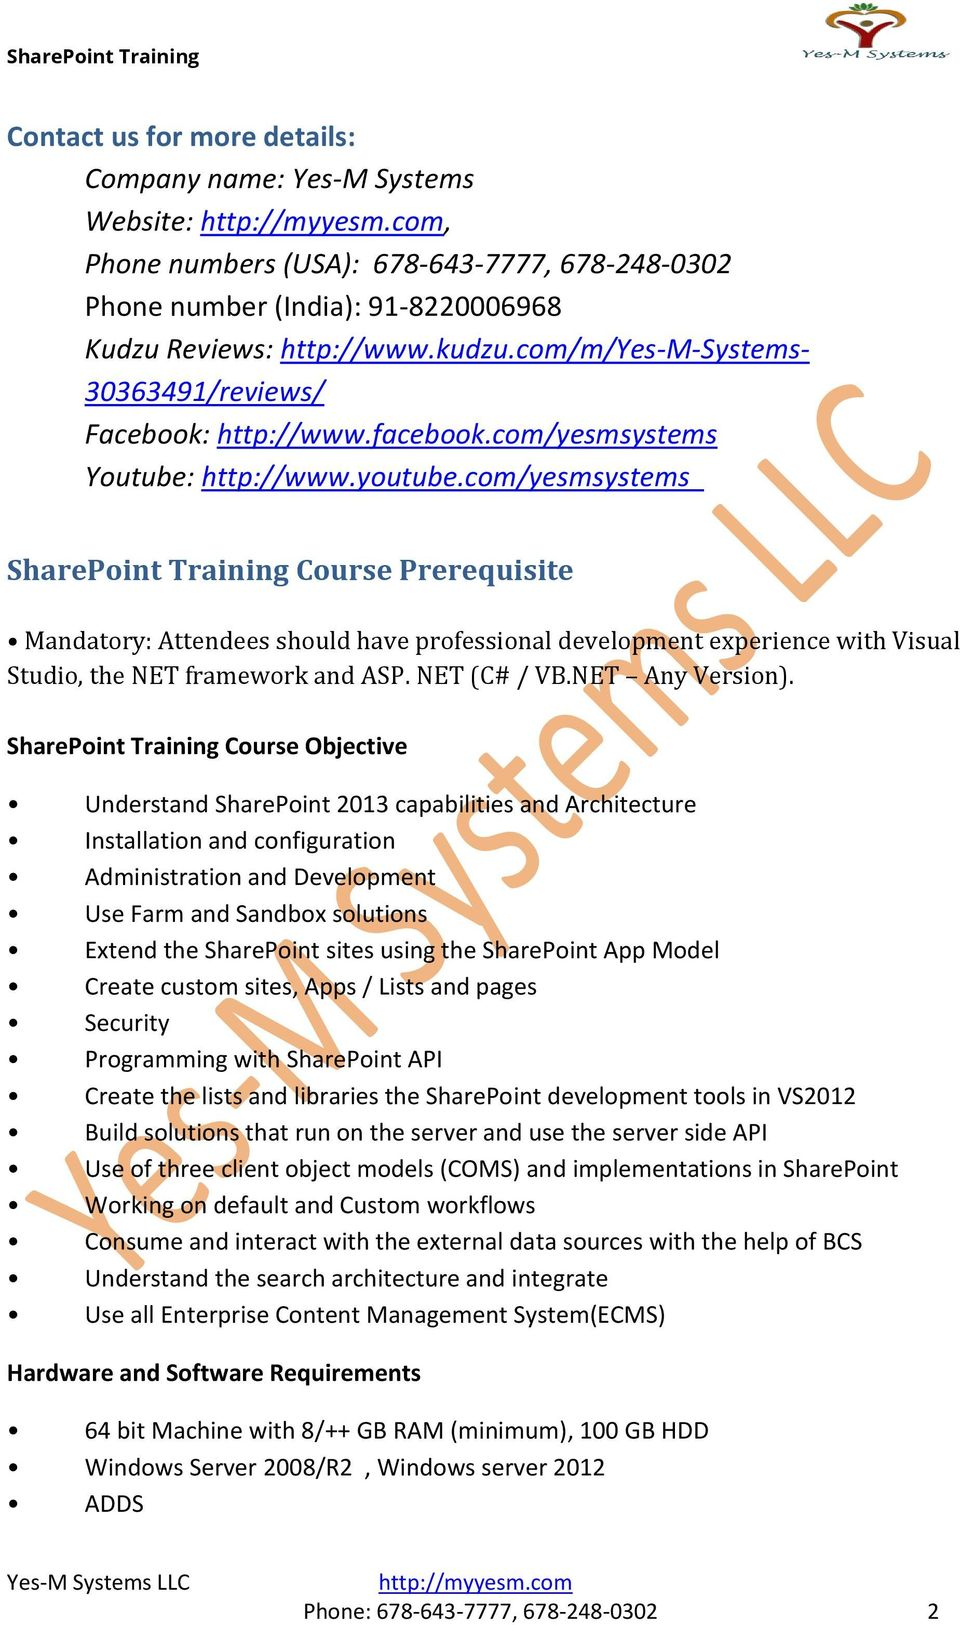 com/yesmsystems SharePoint Training Course Prerequisite Mandatory: Attendees should have professional development experience with Visual Studio, the NET framework and ASP. NET (C# / VB.